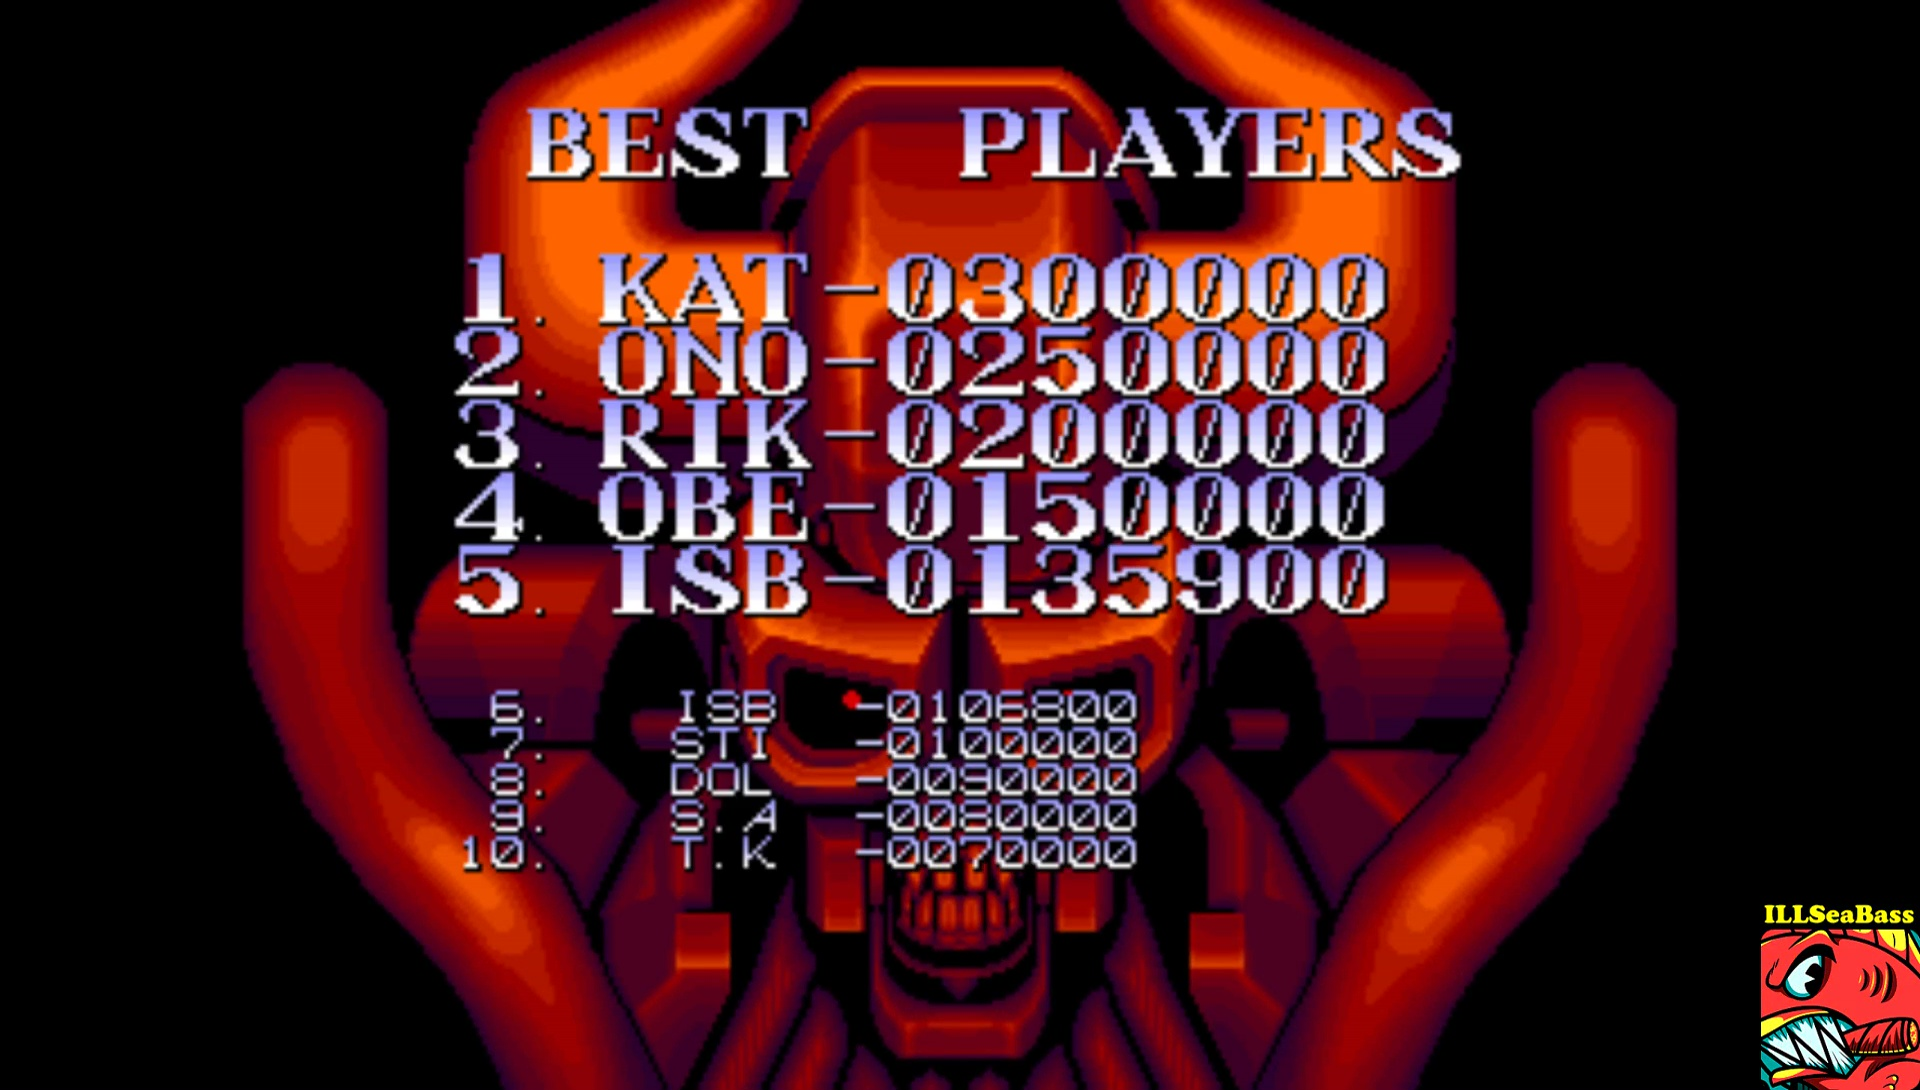 ILLSeaBass: Night Slashers [nslasher] (Arcade Emulated / M.A.M.E.) 135,900 points on 2017-07-18 23:37:28